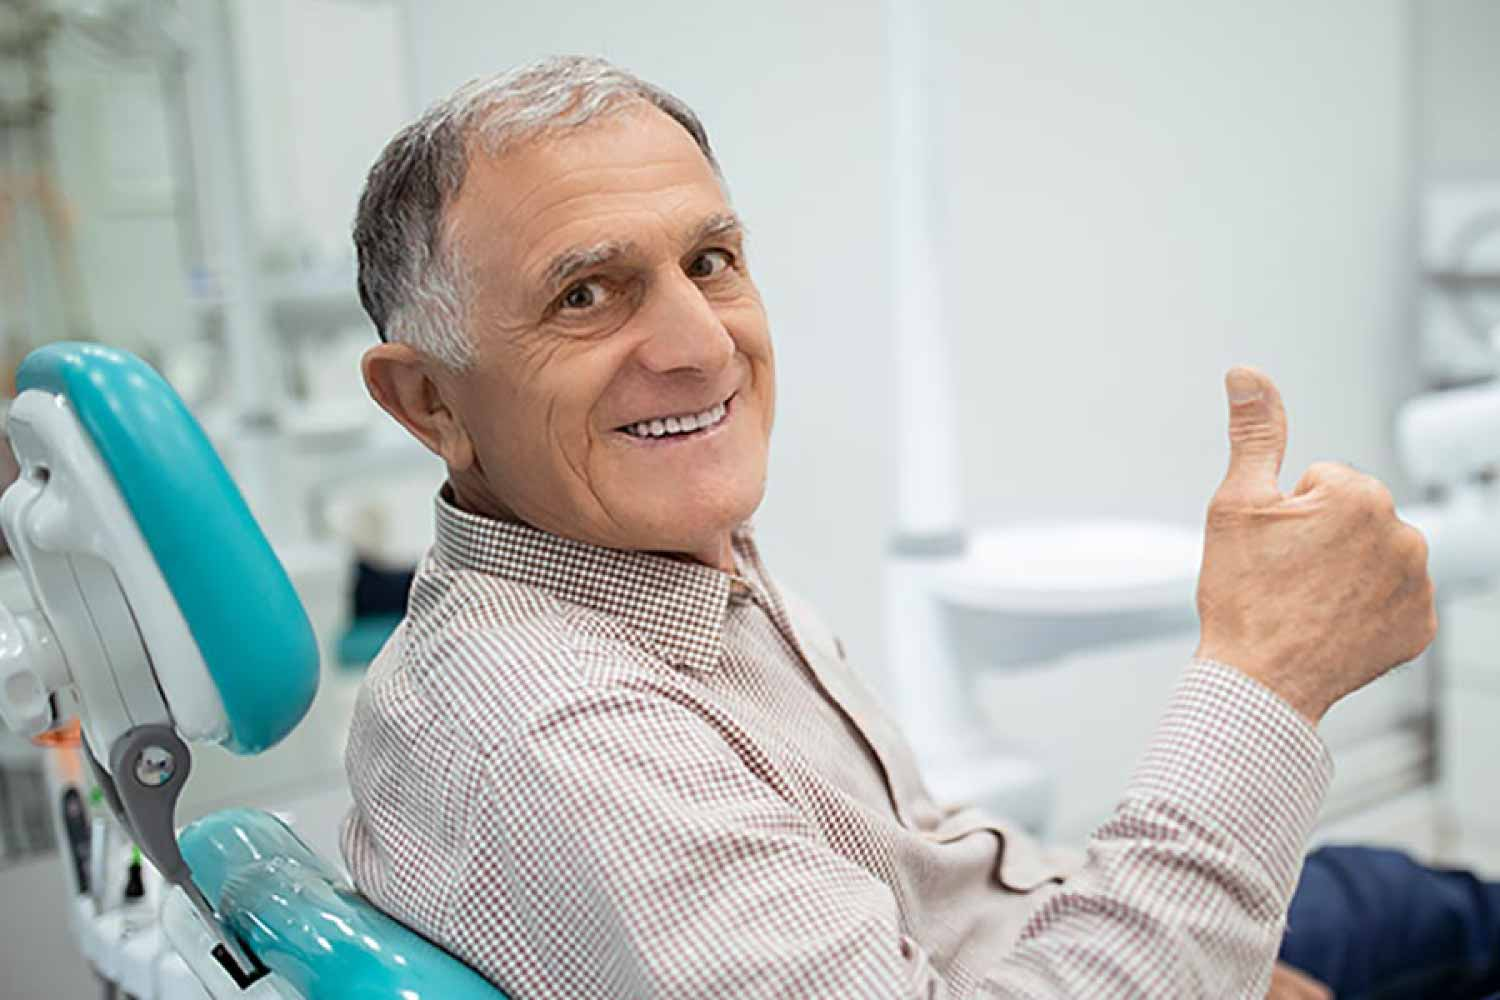 Mature man giving the thumbs up sign from the dental chair.